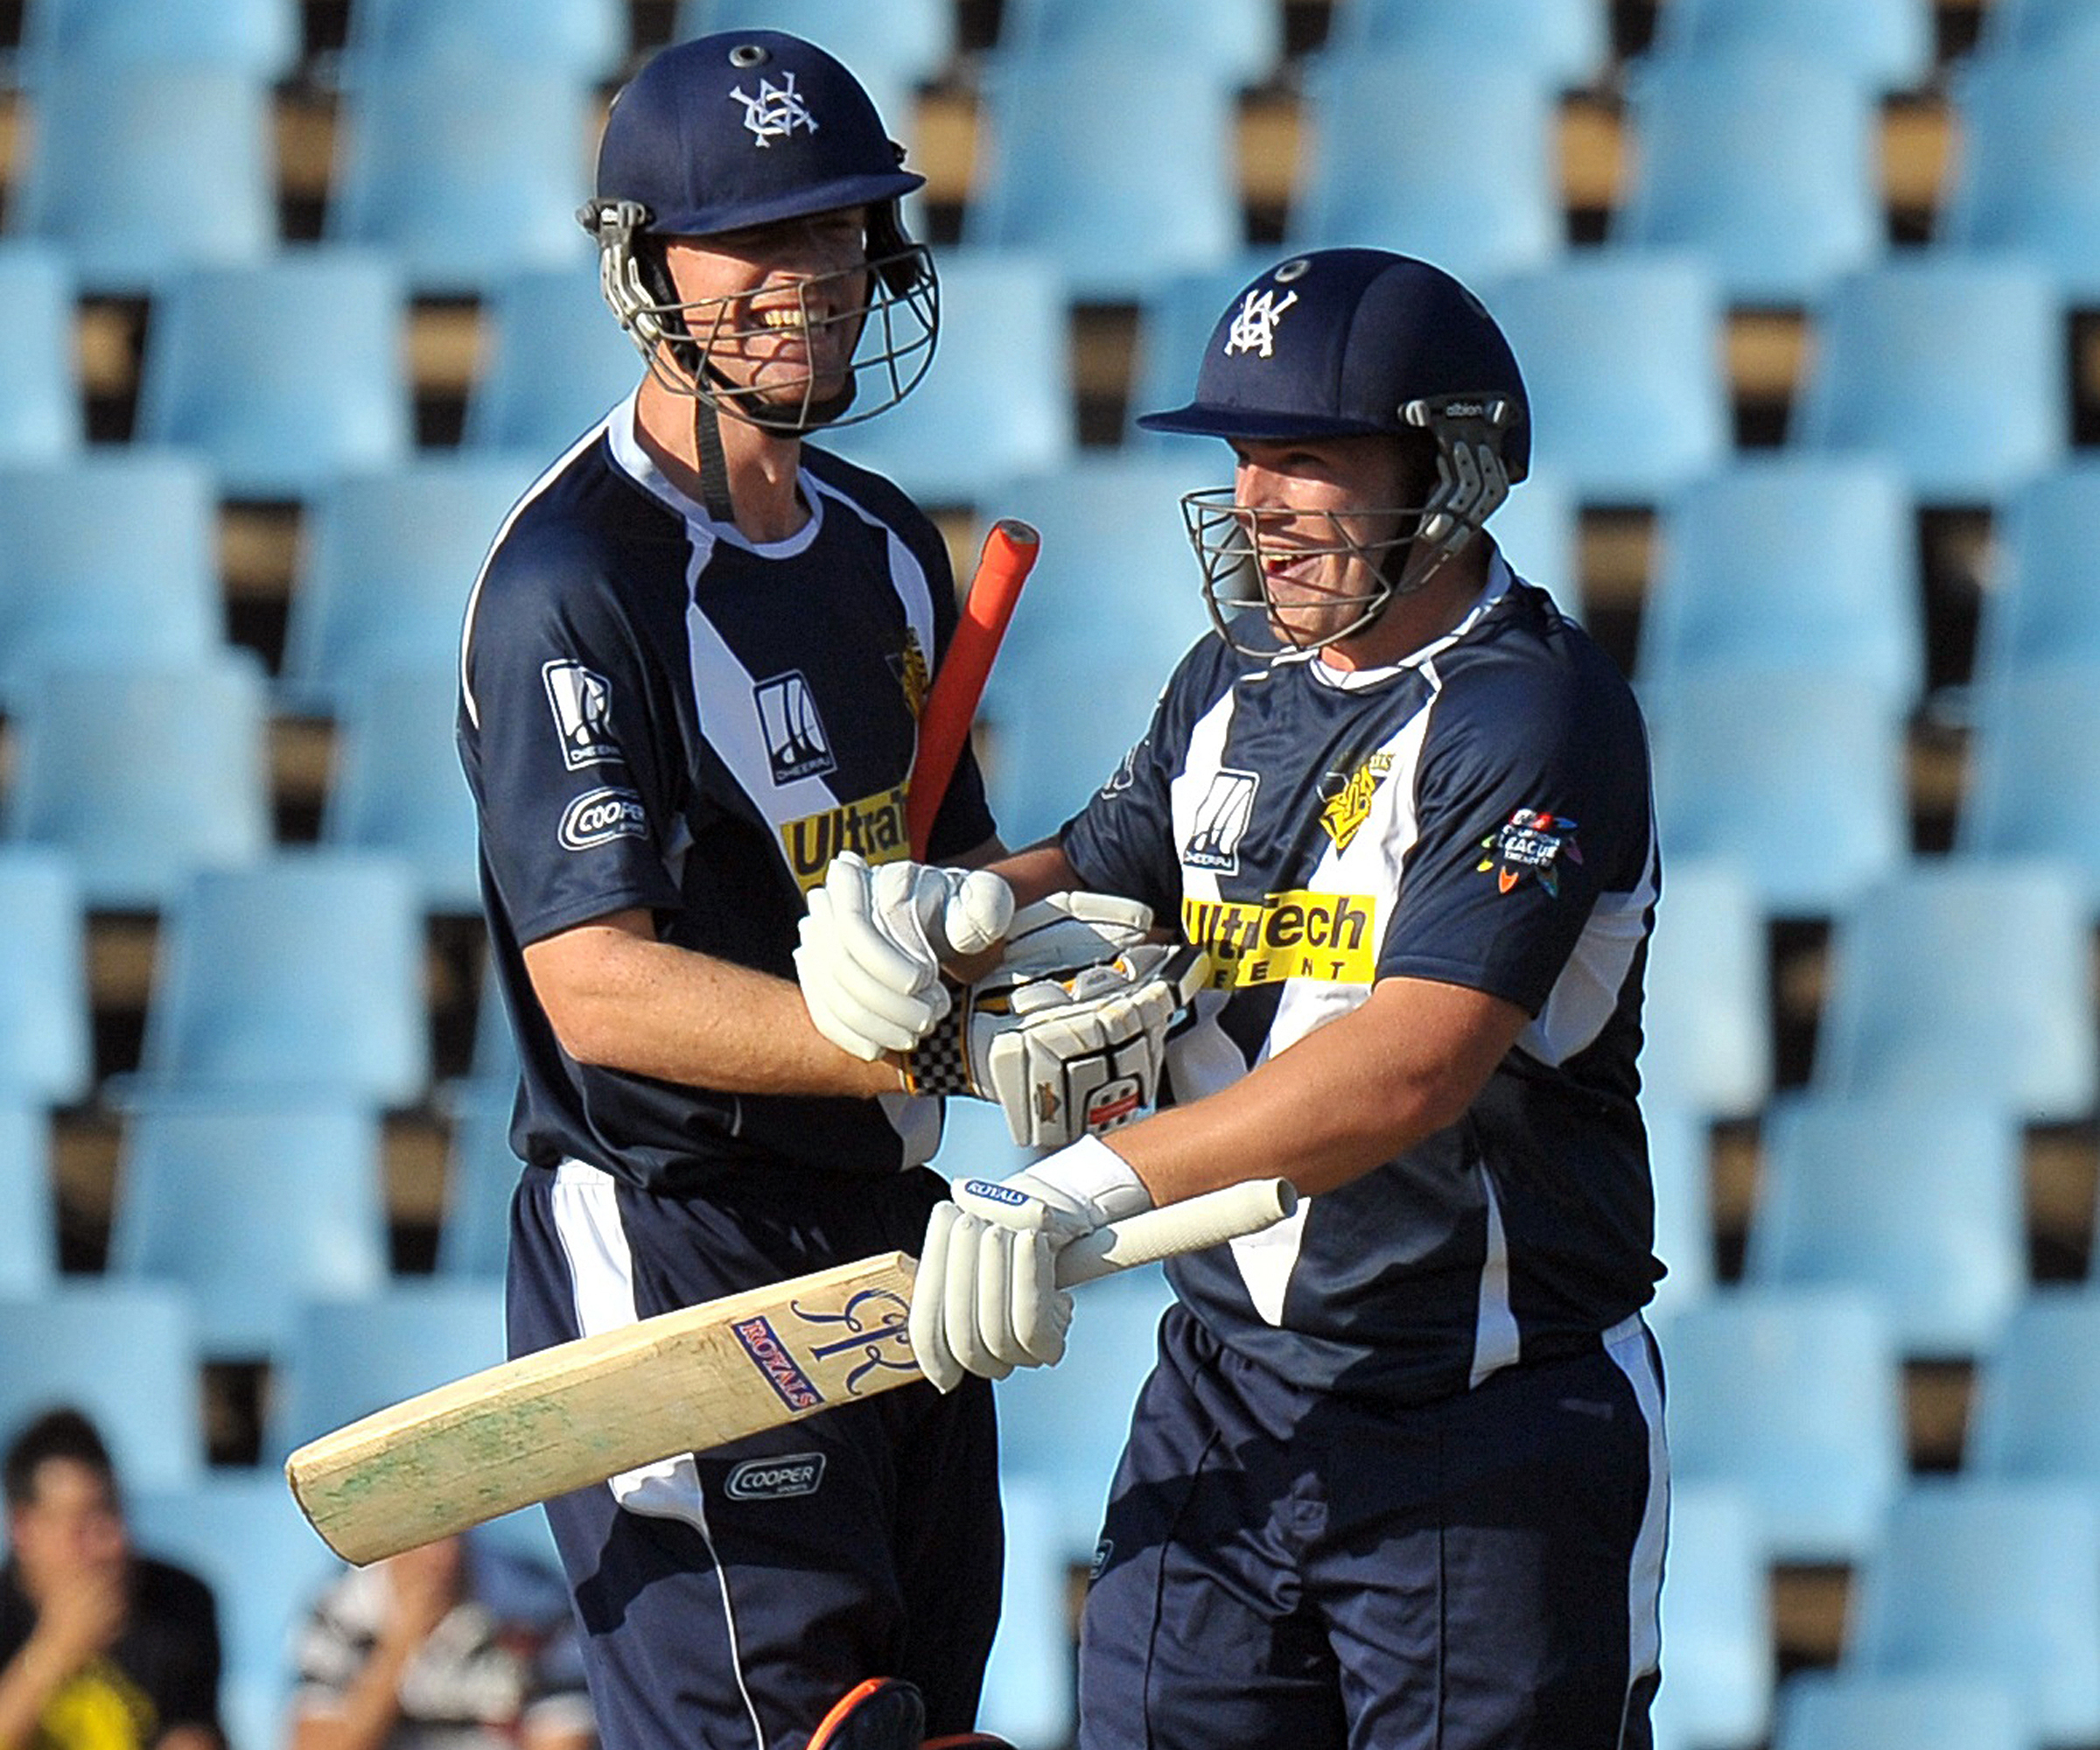 McDonald and Finch at the crease together for Victoria // Getty